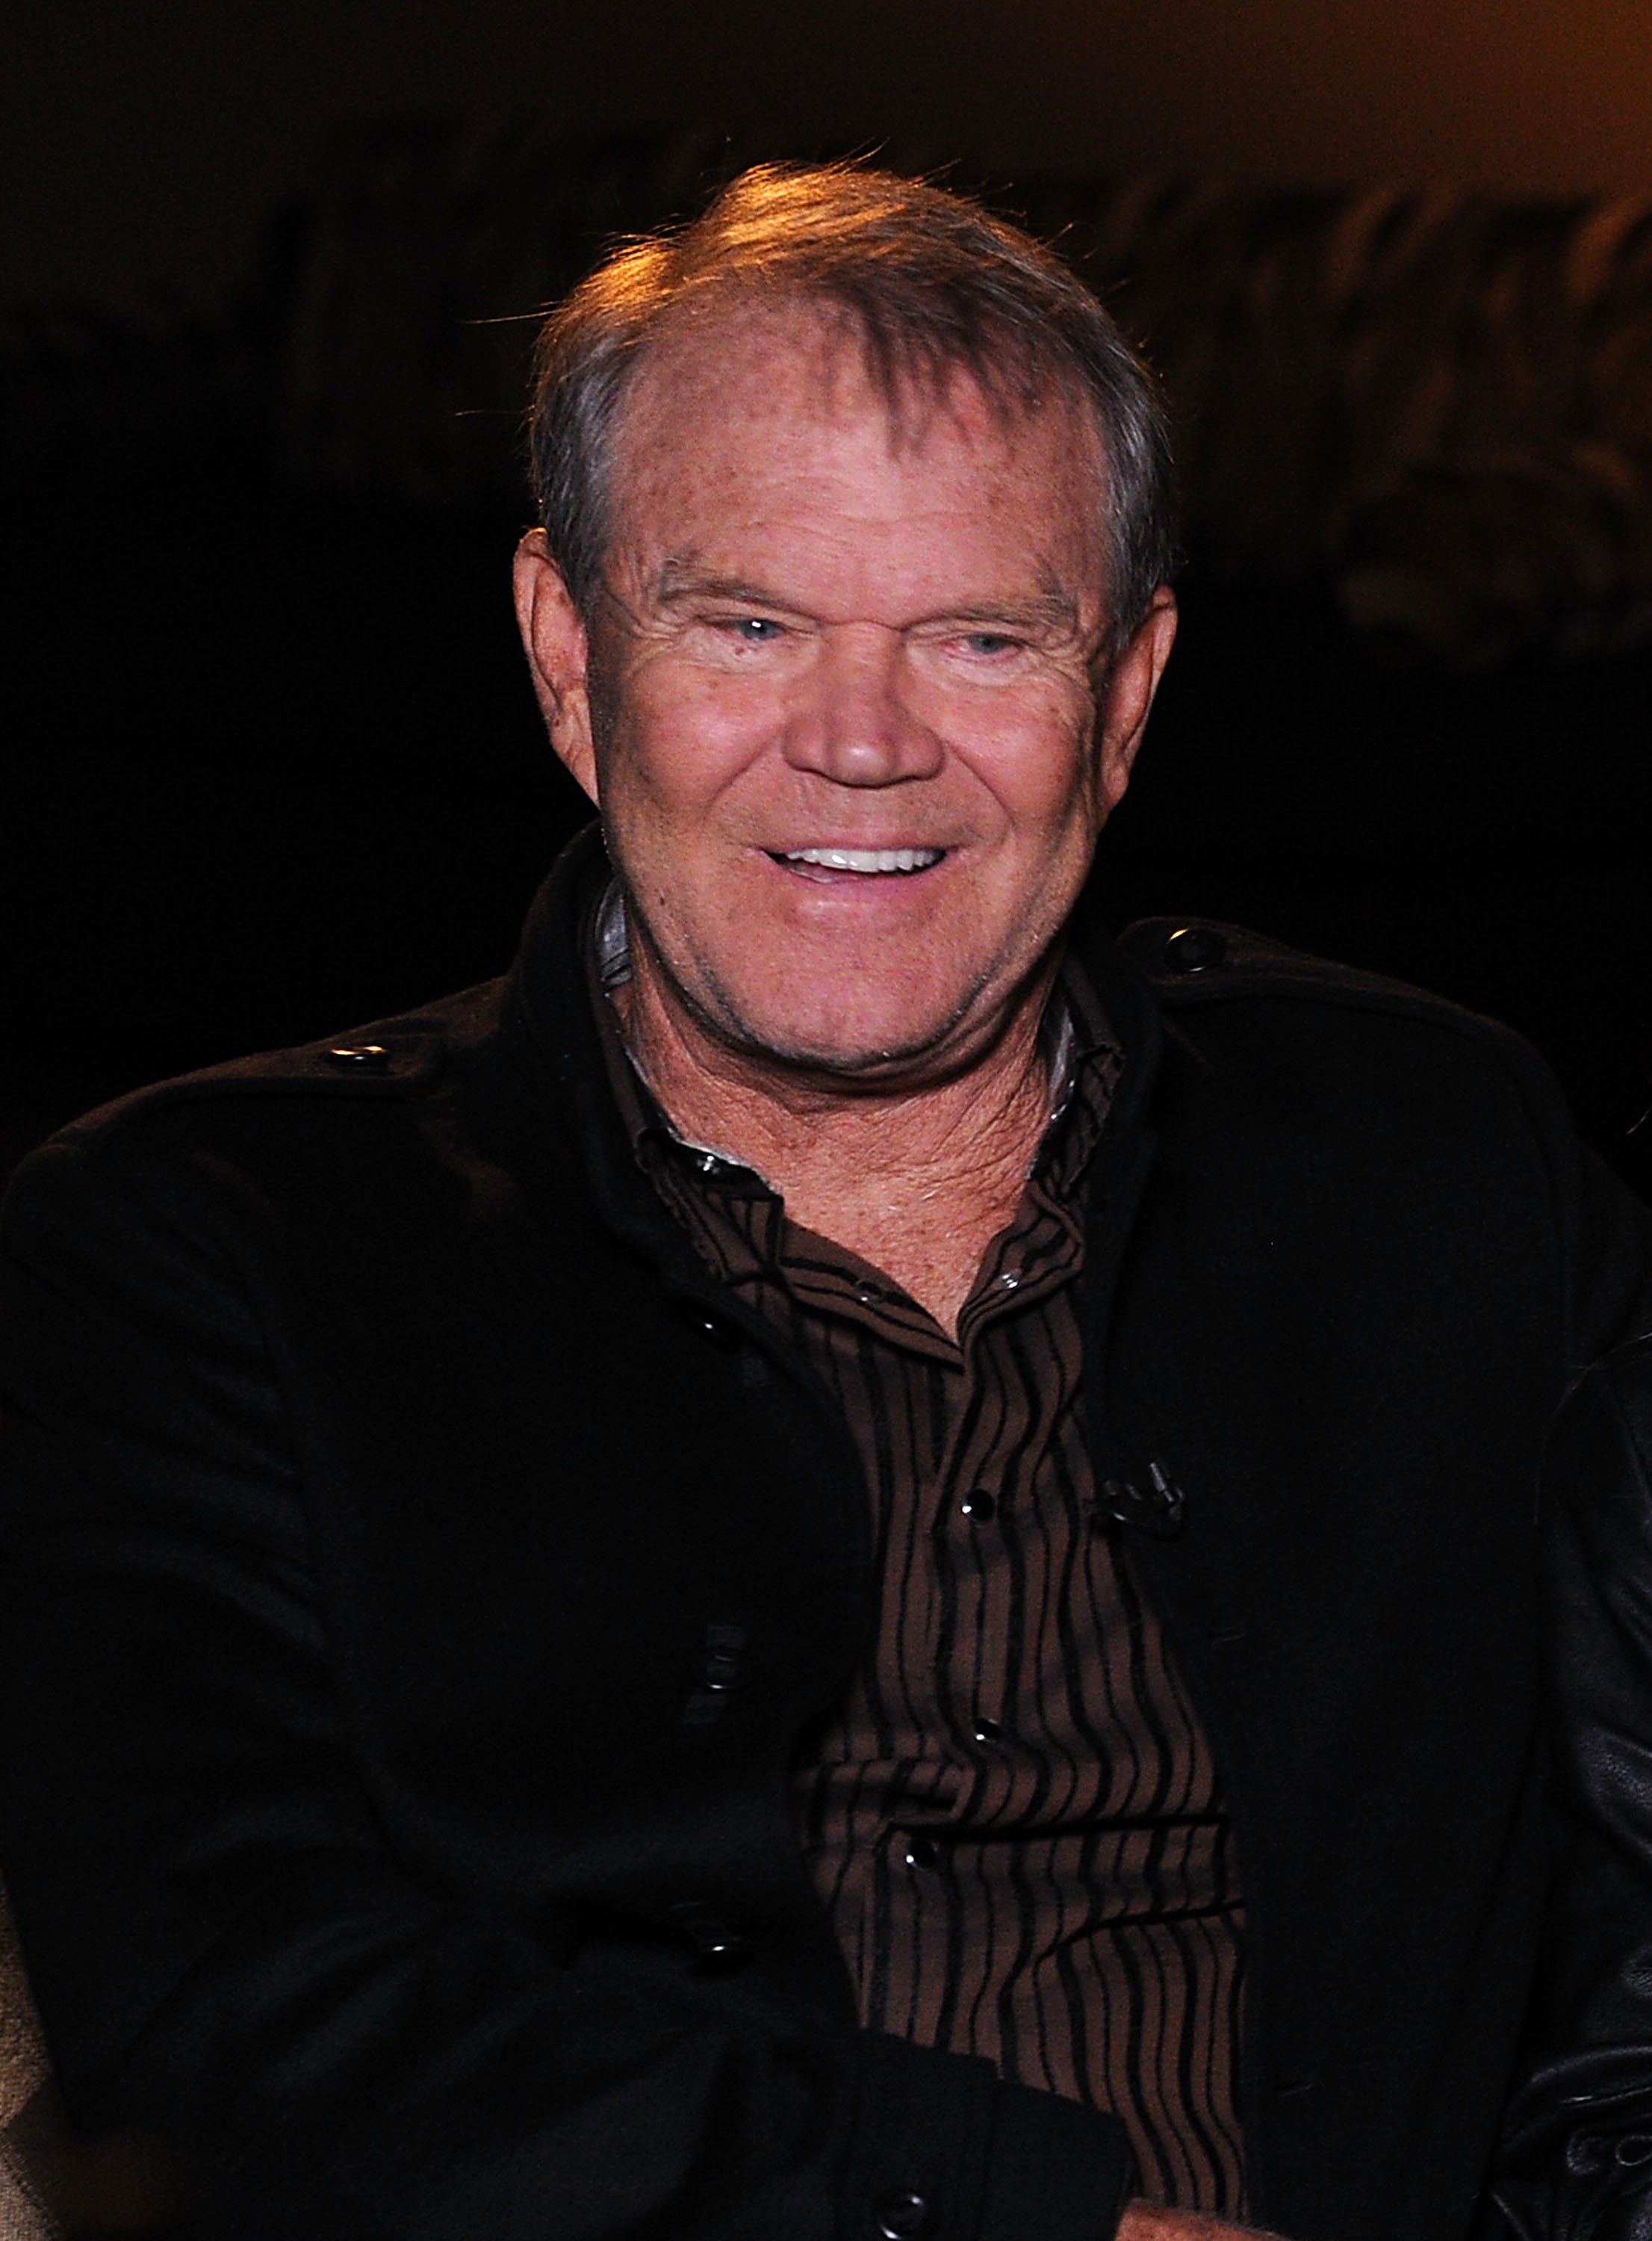 Glen Campbell at the Bridgestone Arena on Sep. 19, 2011 in Nashville, Tennessee. |Photo: Getty Images